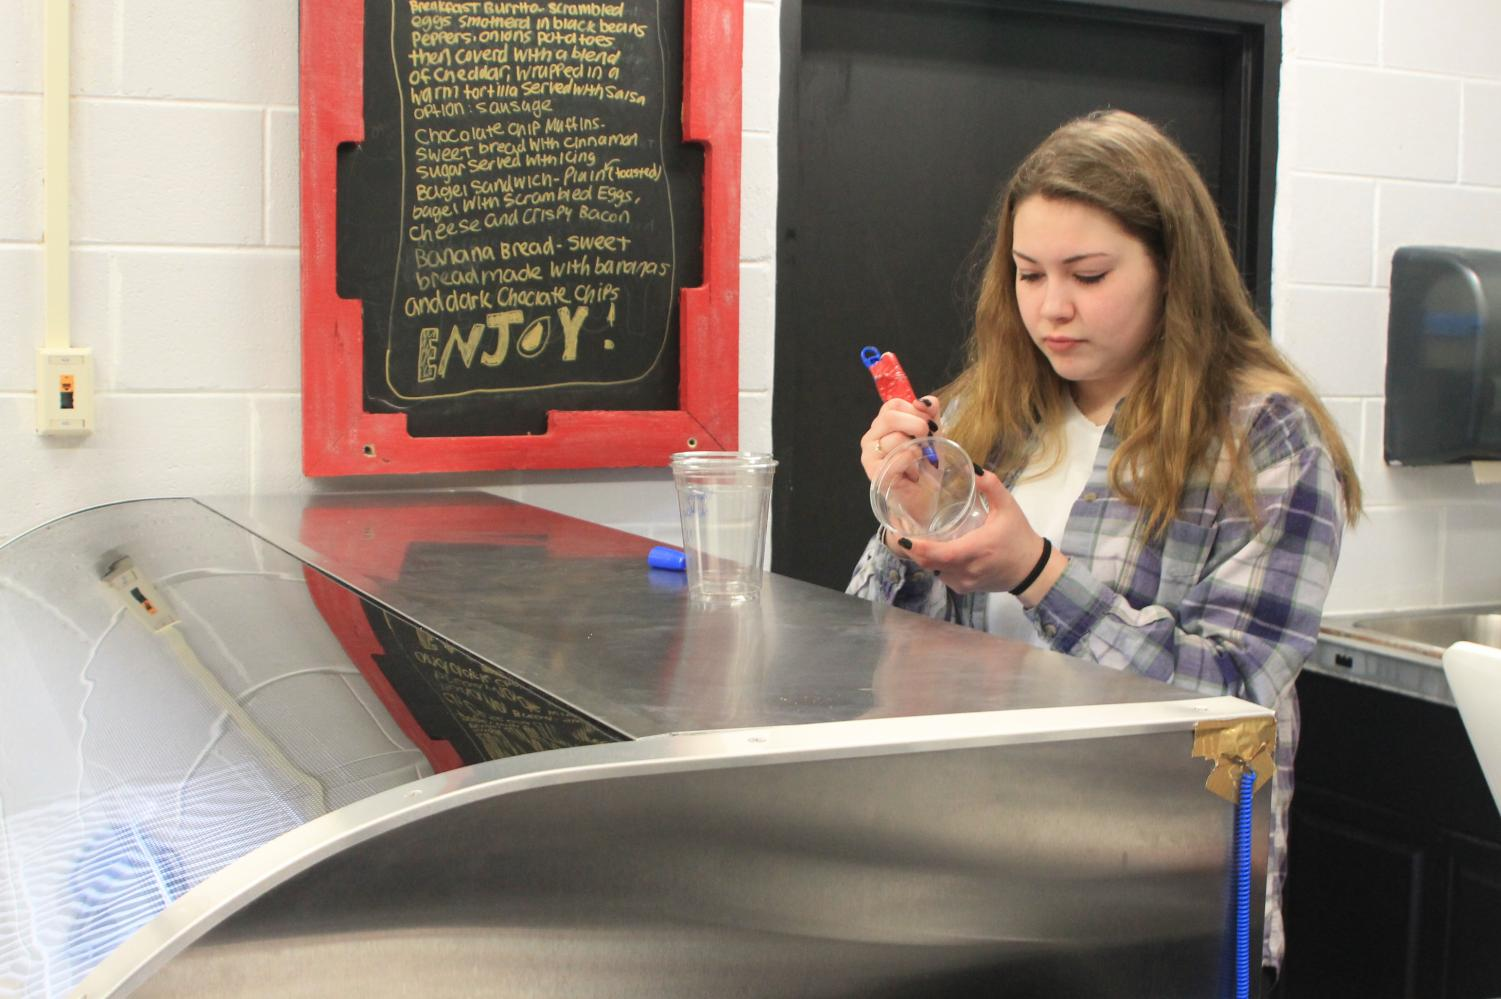 Erin Zollers is writing a drink order on a cup in Cafe 302.